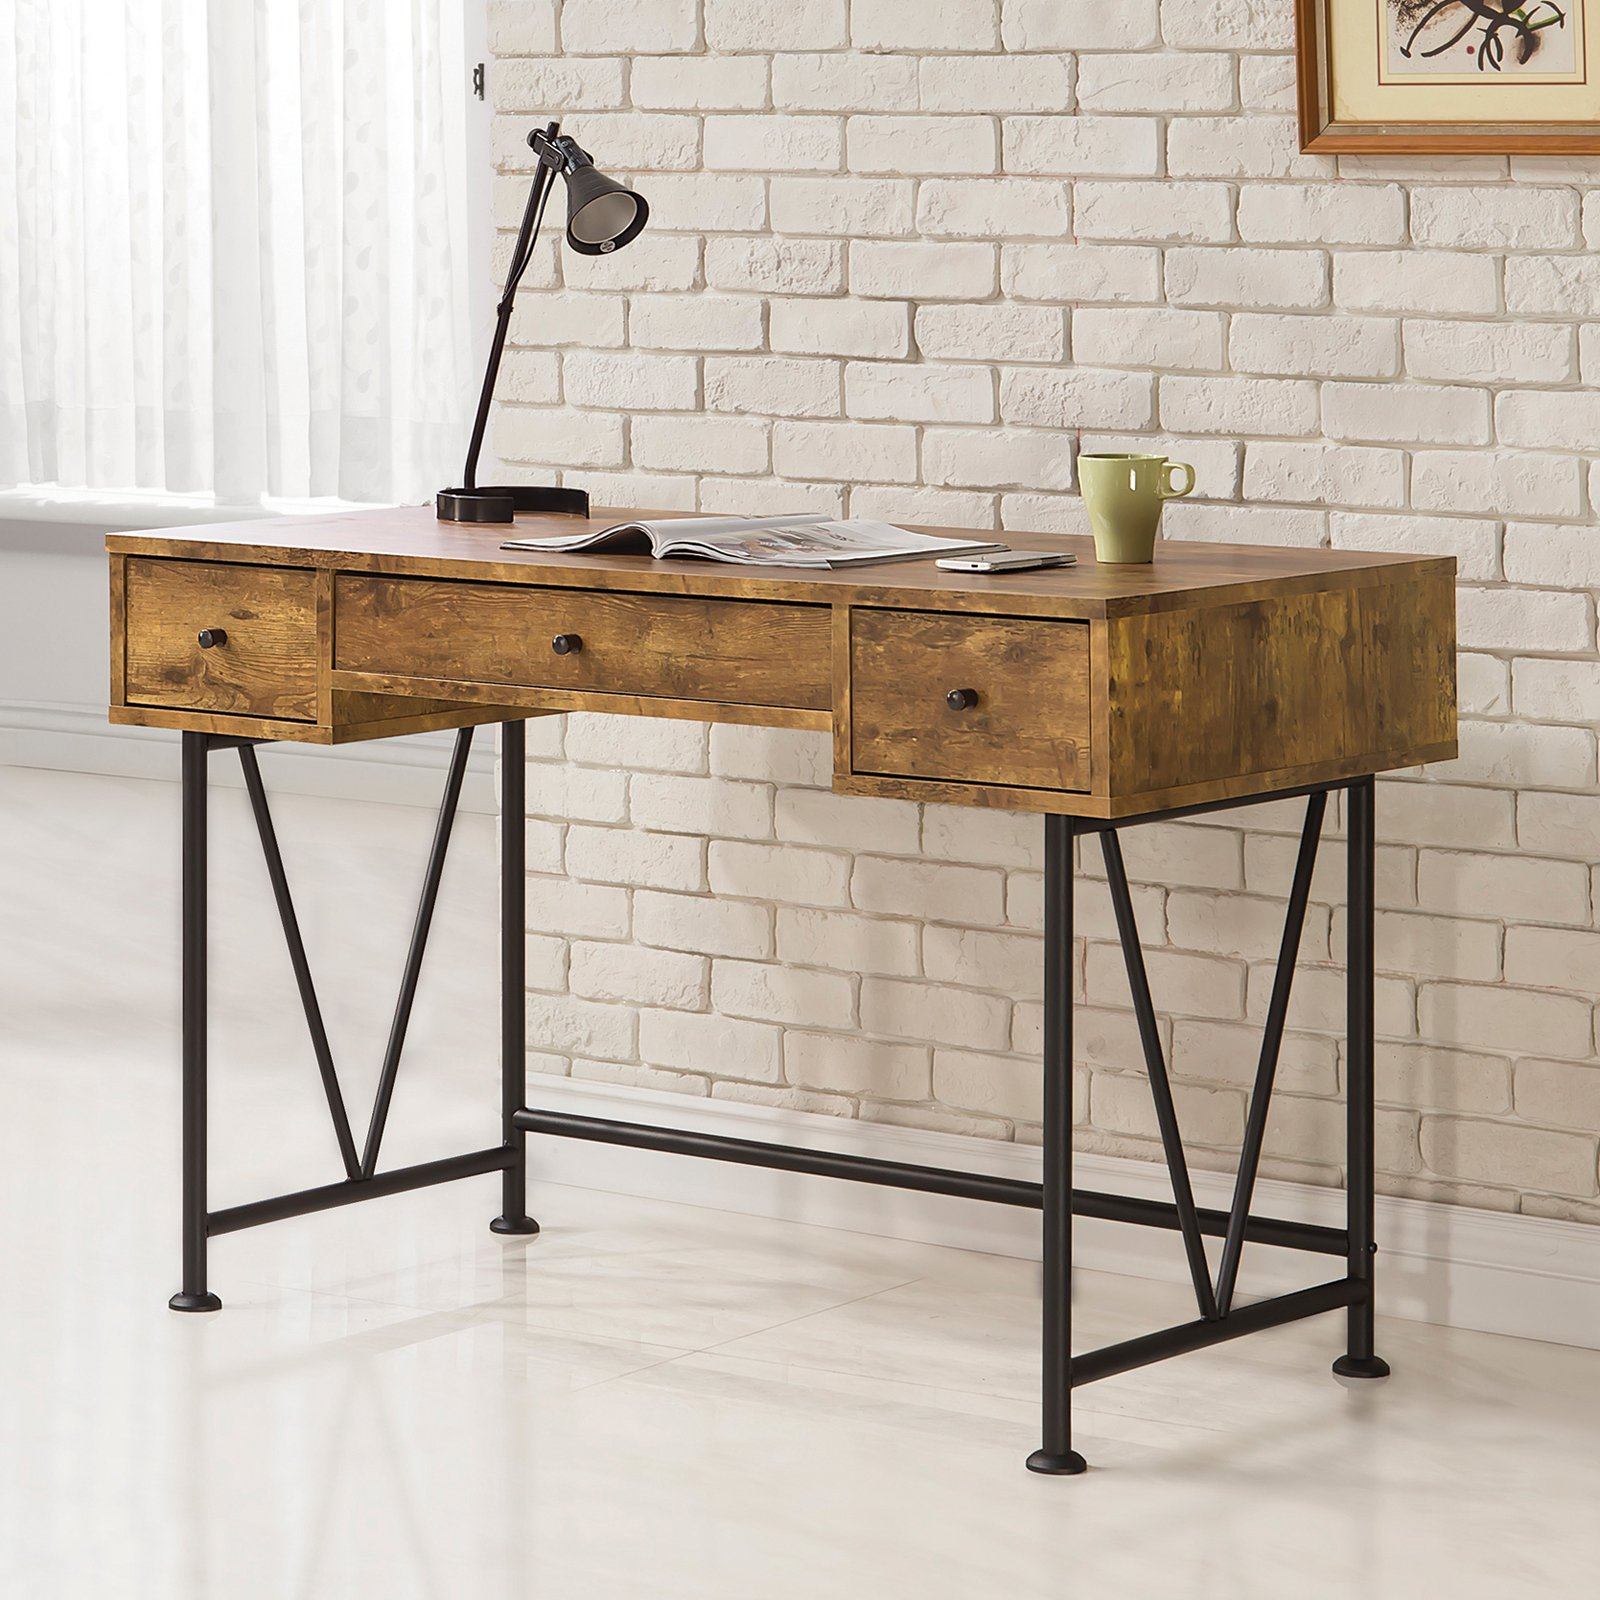 Coaster Furniture Antique Nutmeg Writing Desk With V Shaped Legs